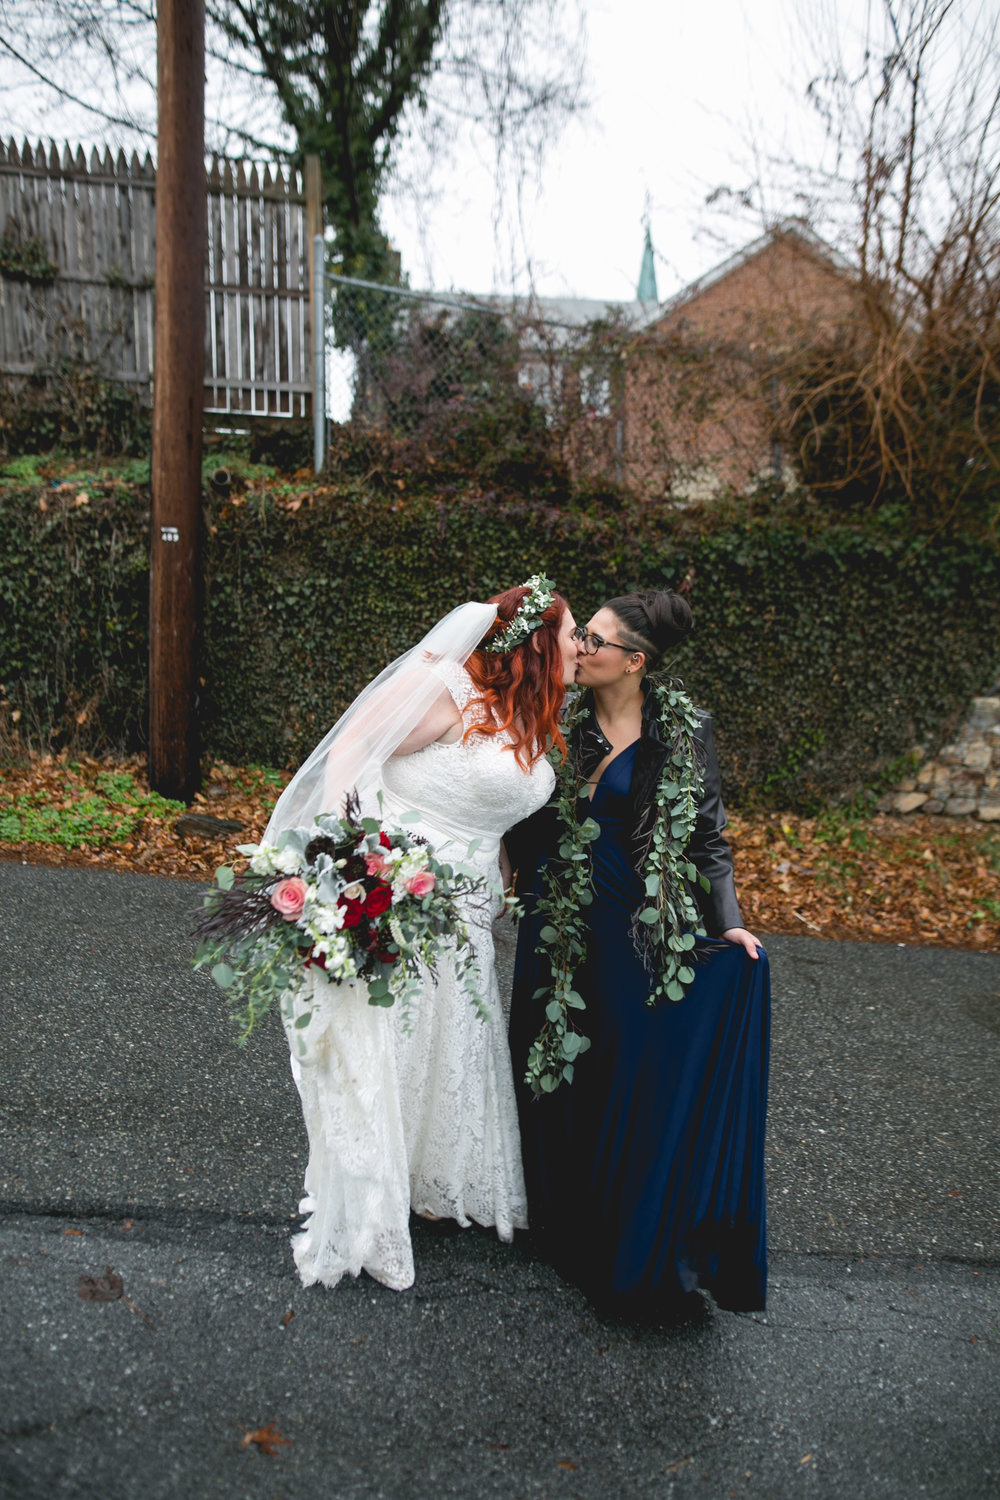 LGBTQ Philadelphia Wedding by Swiger Photography the Lesbian photographer 21